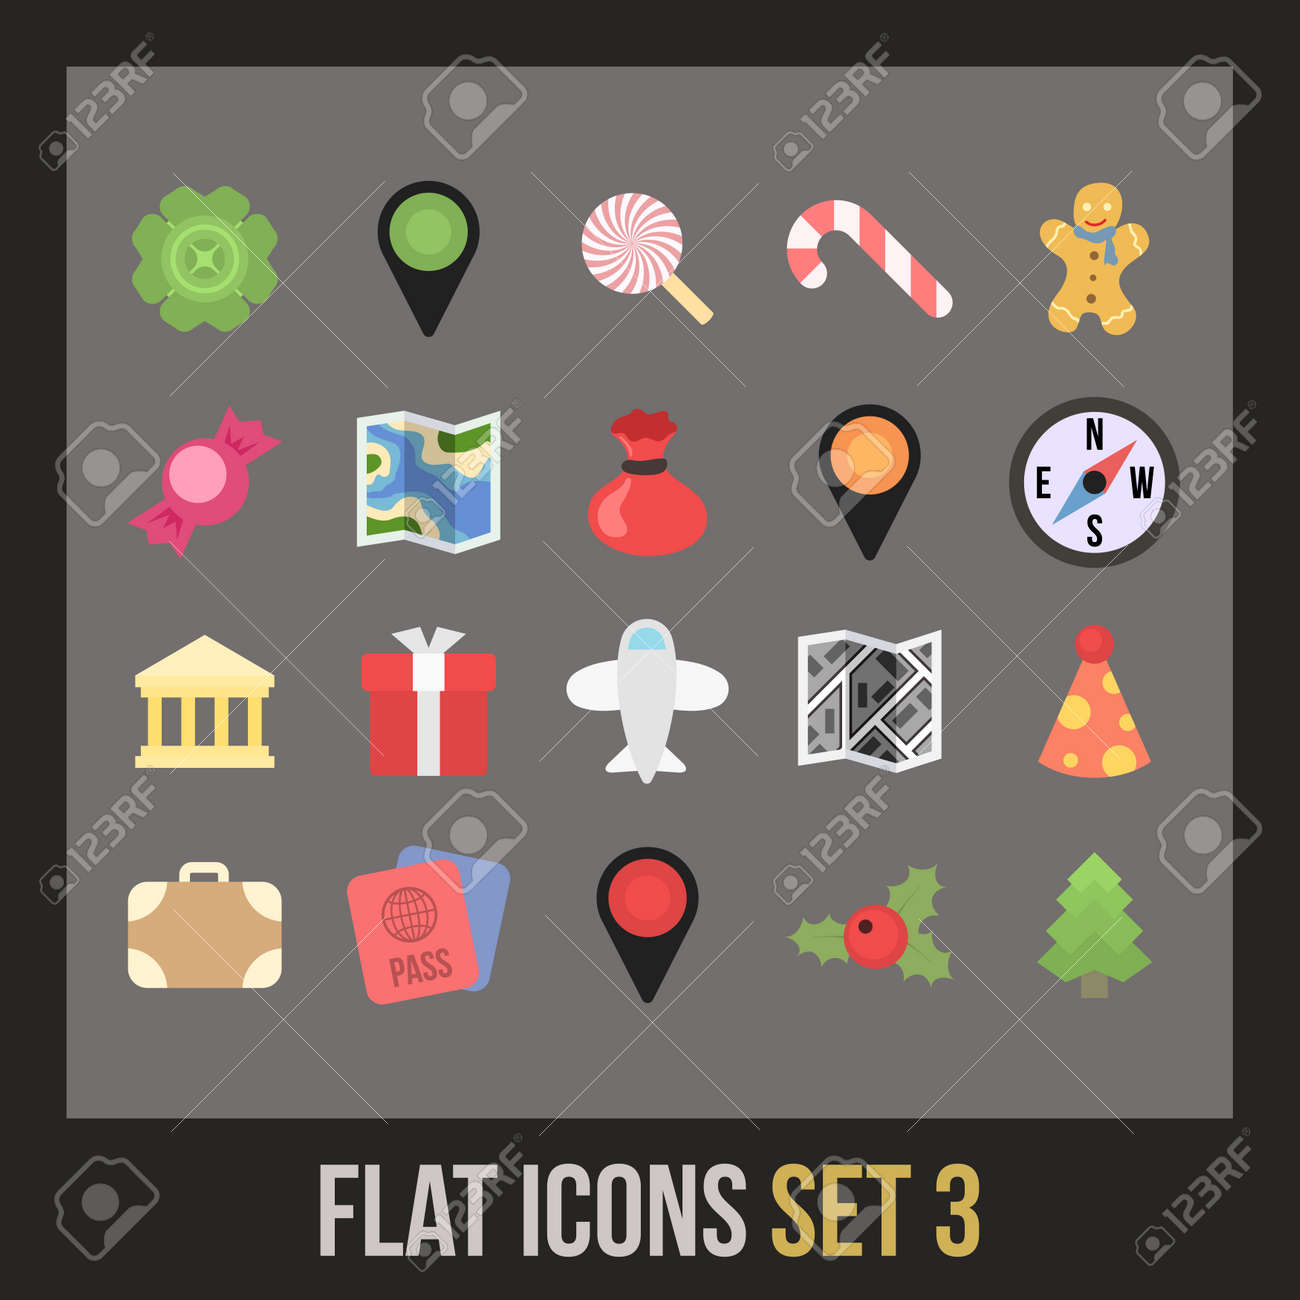 Flat icons set 3 - holiday collection Stock Vector - 24510928